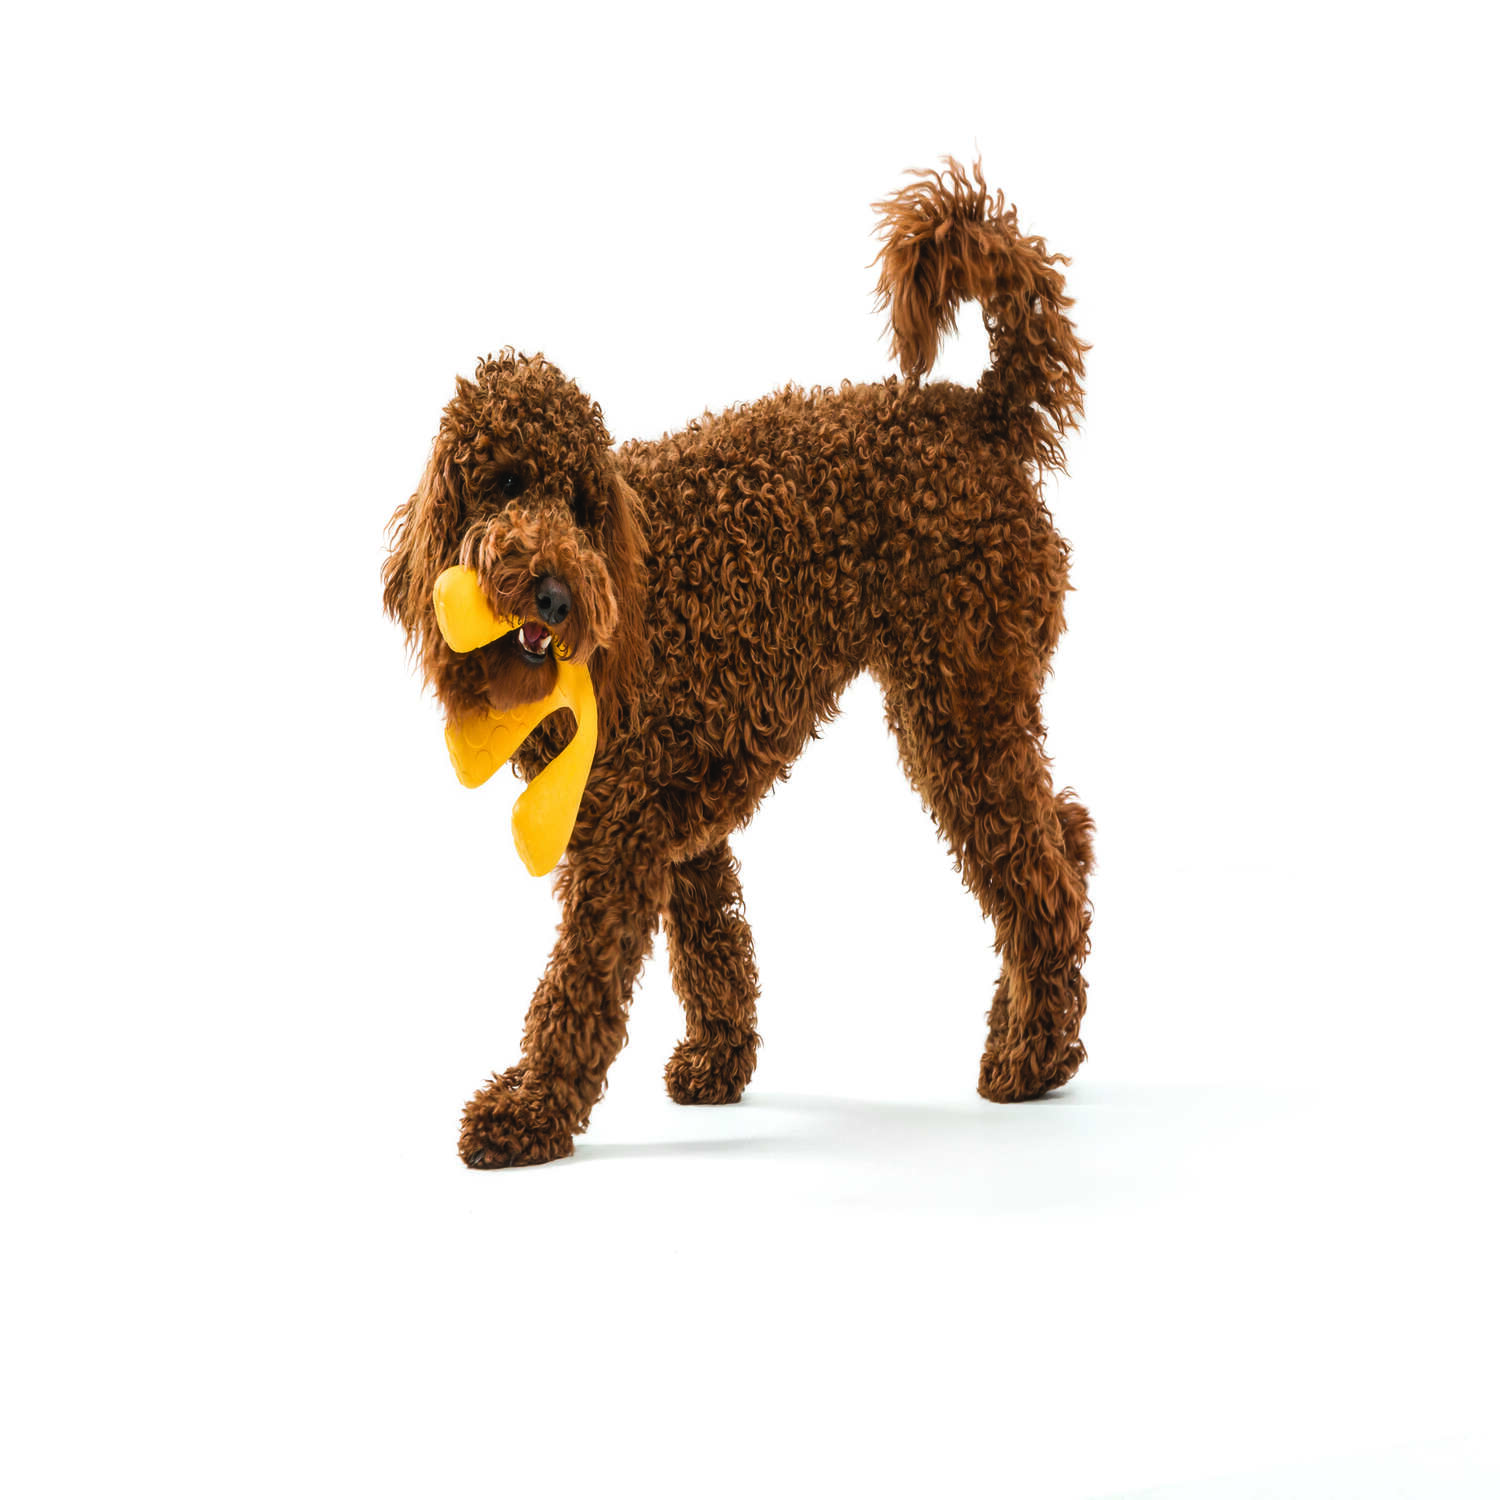 West Paw  Zogoflex Air  Yellow  Synthetic Rubber  Dog Tug Toy  Small  Wox Tri-Handle Tug